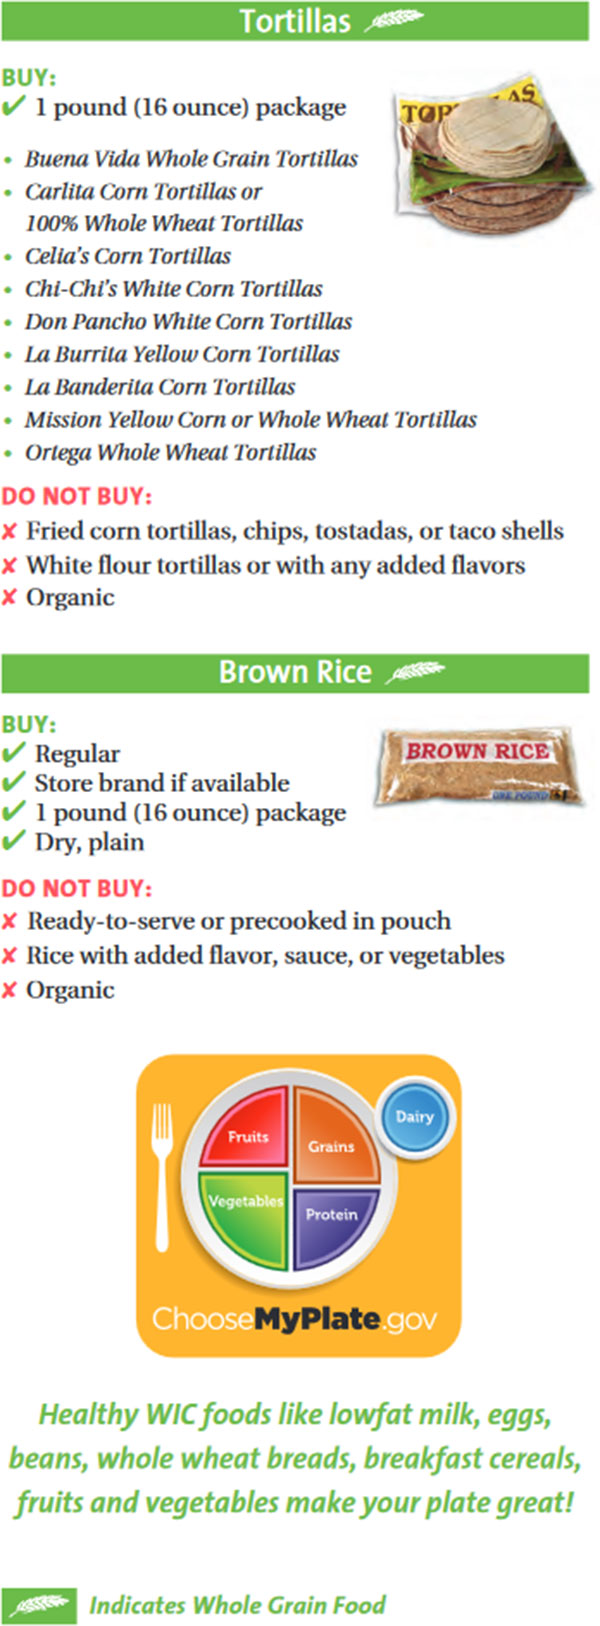 Maryland WIC Food List Tortillas and Brown Rice